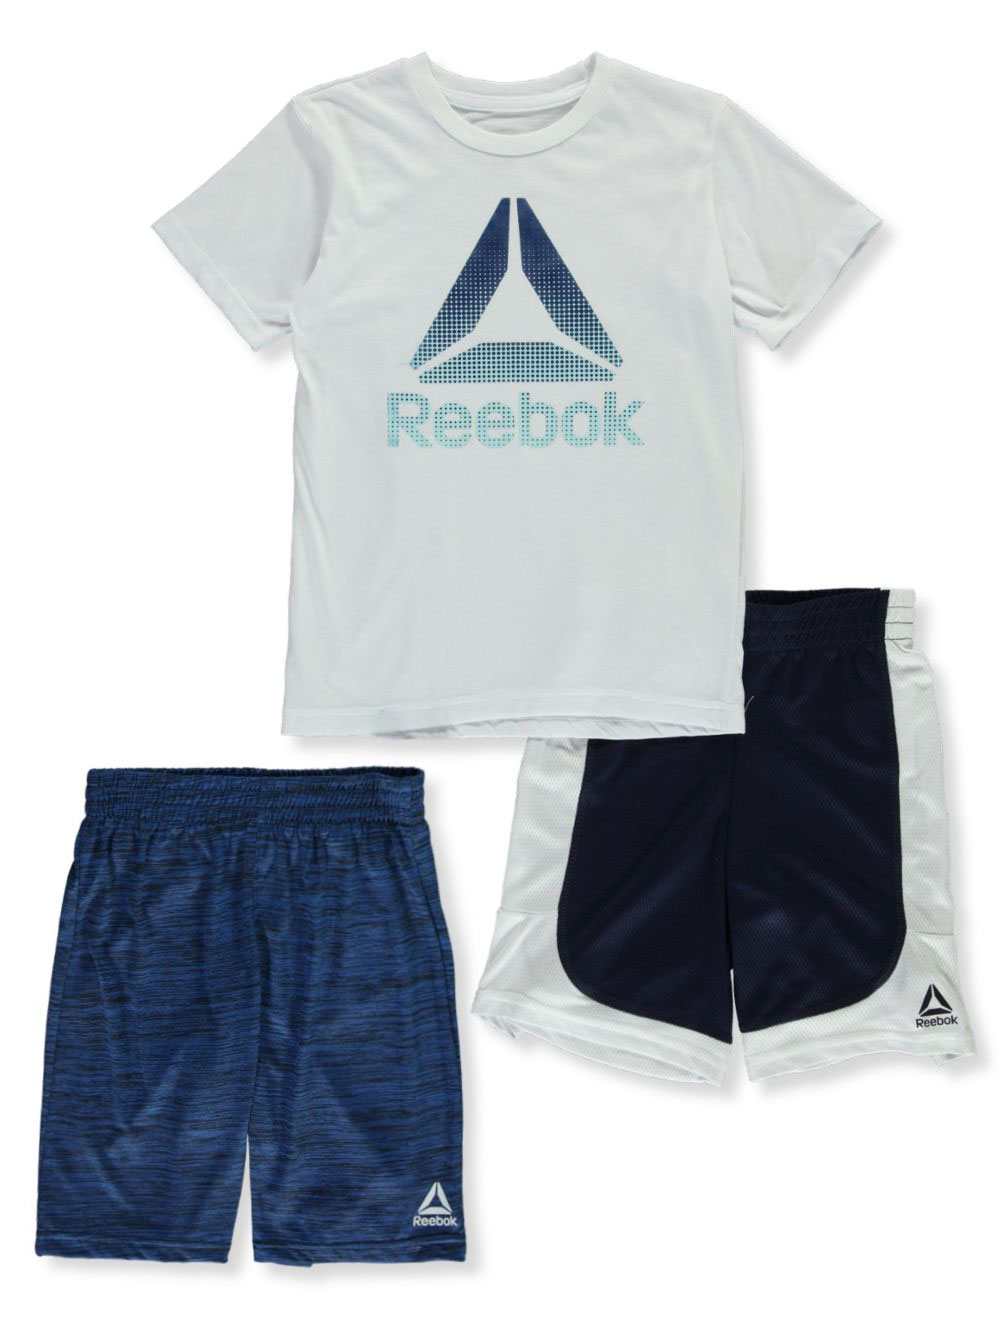 Size 8-10 Sets for Boys